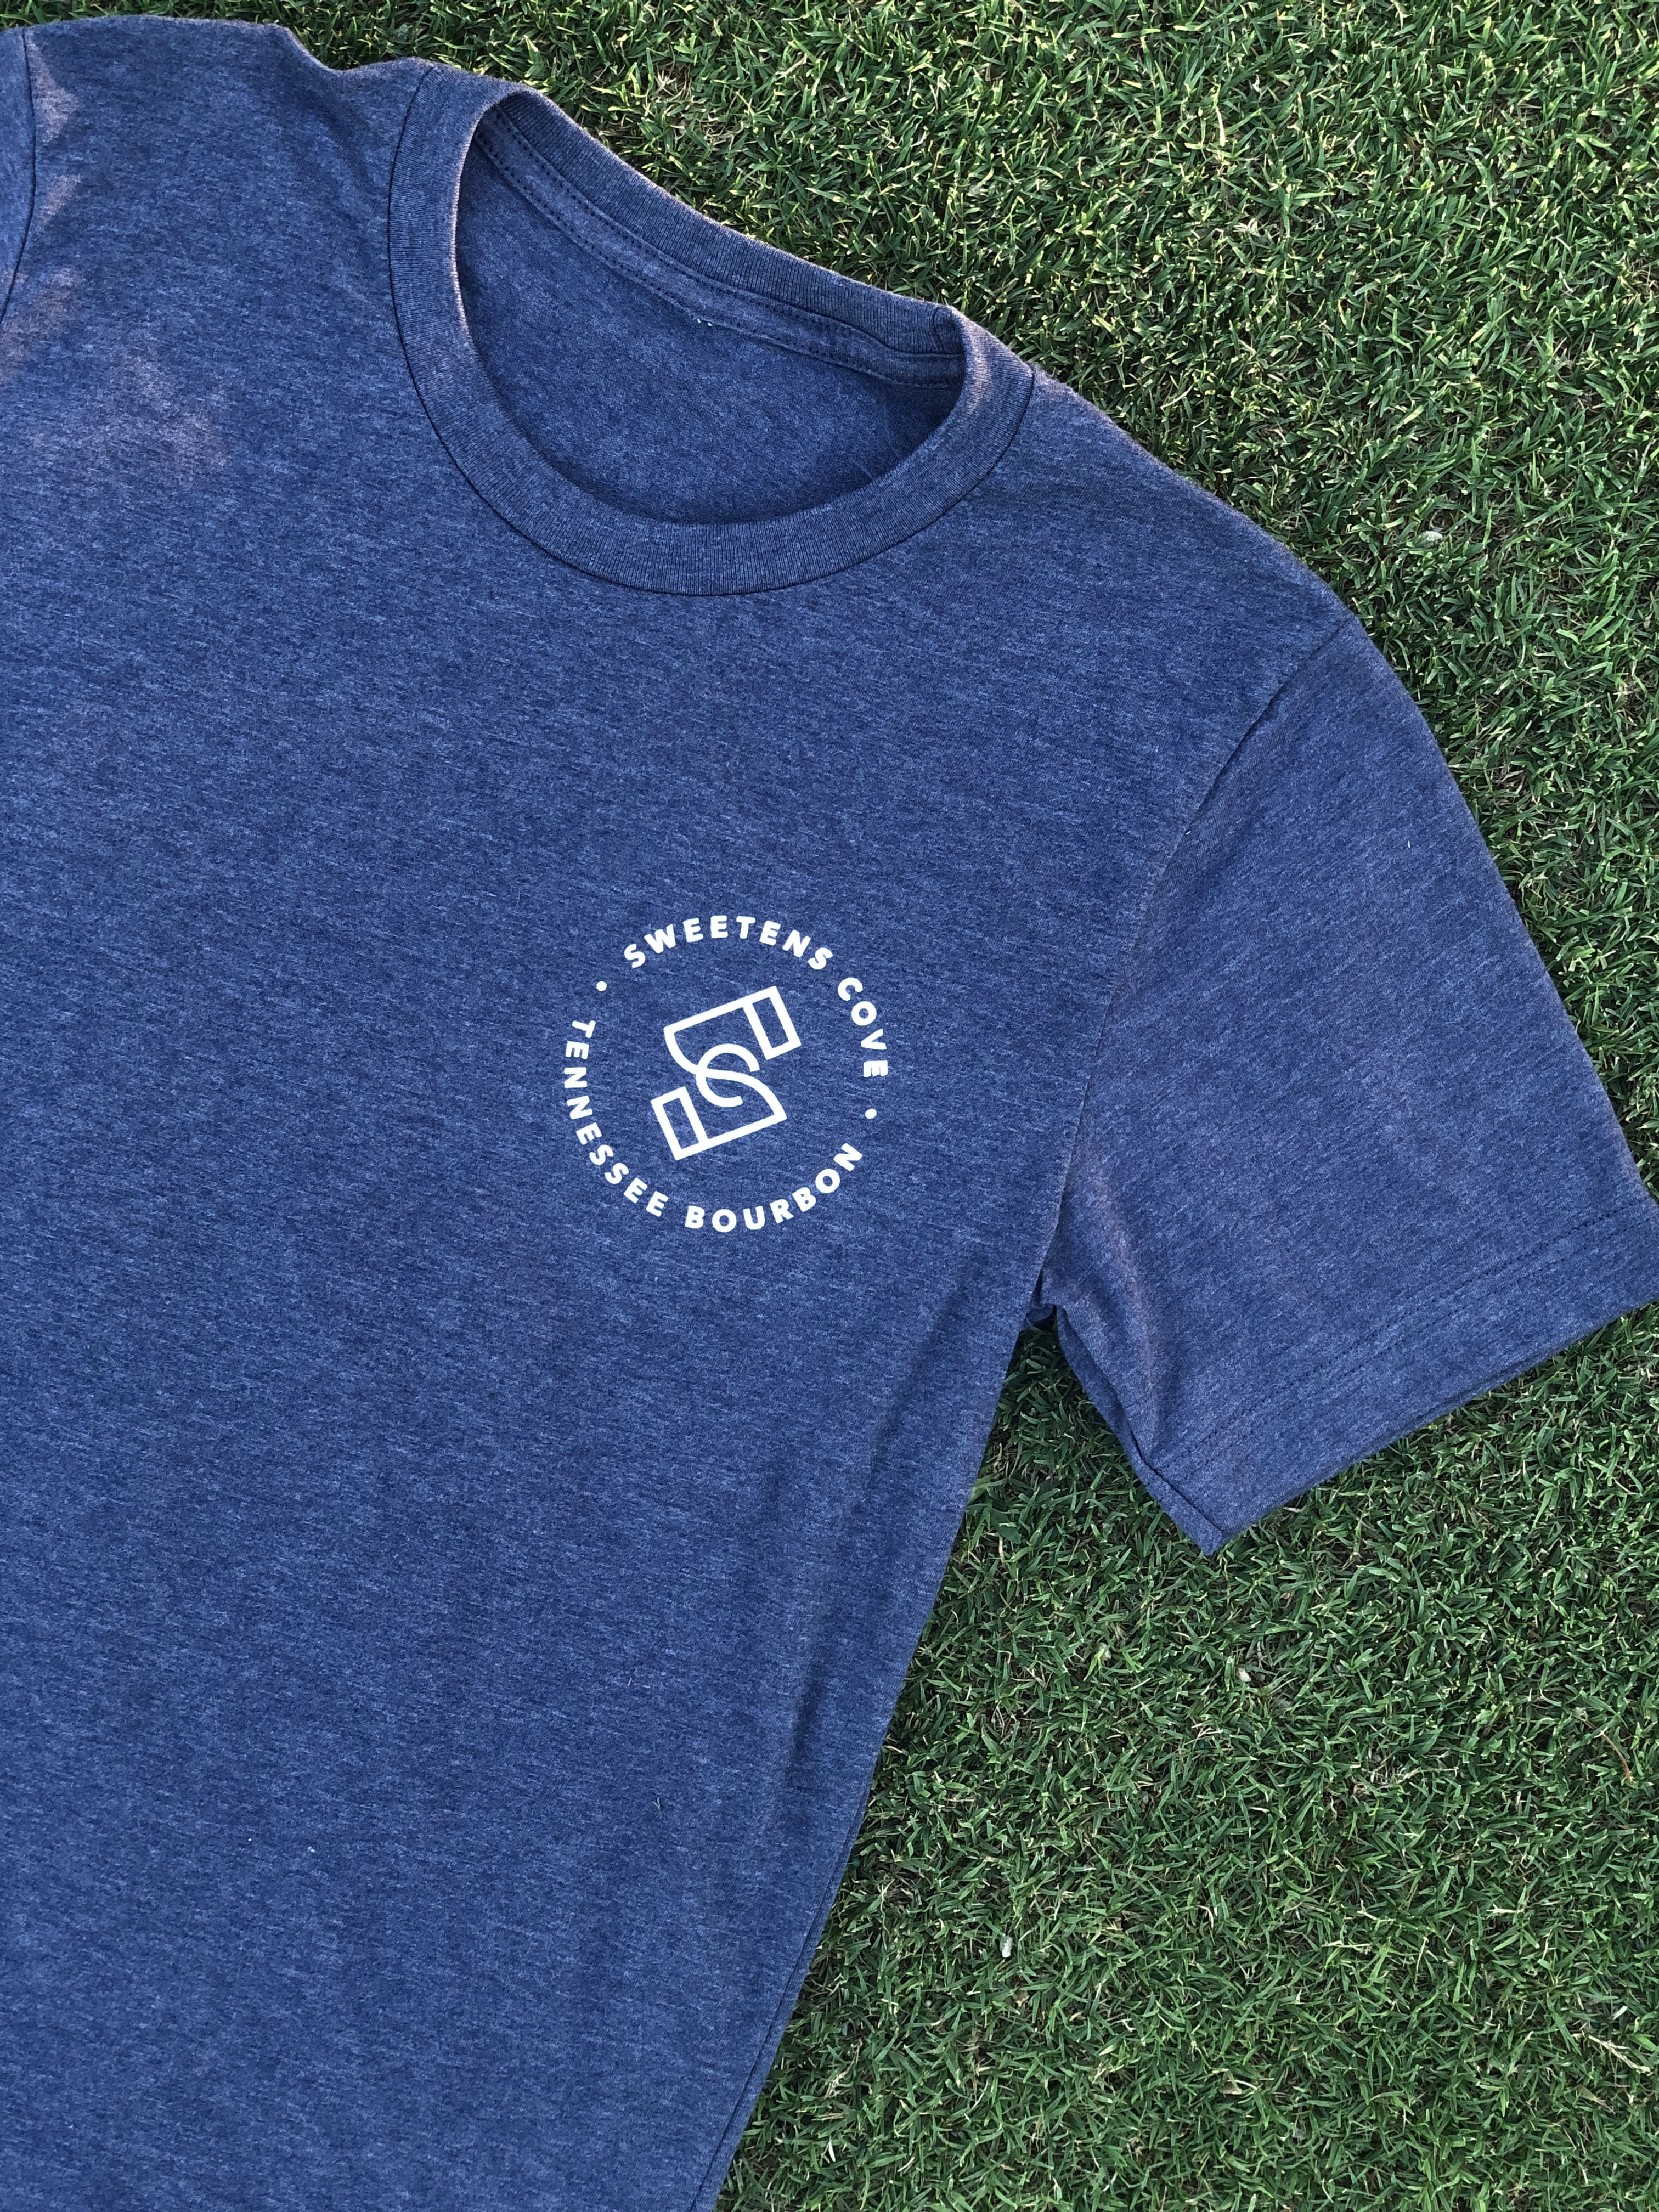 Sweetens Cove Spirits Company Shirt in Navy